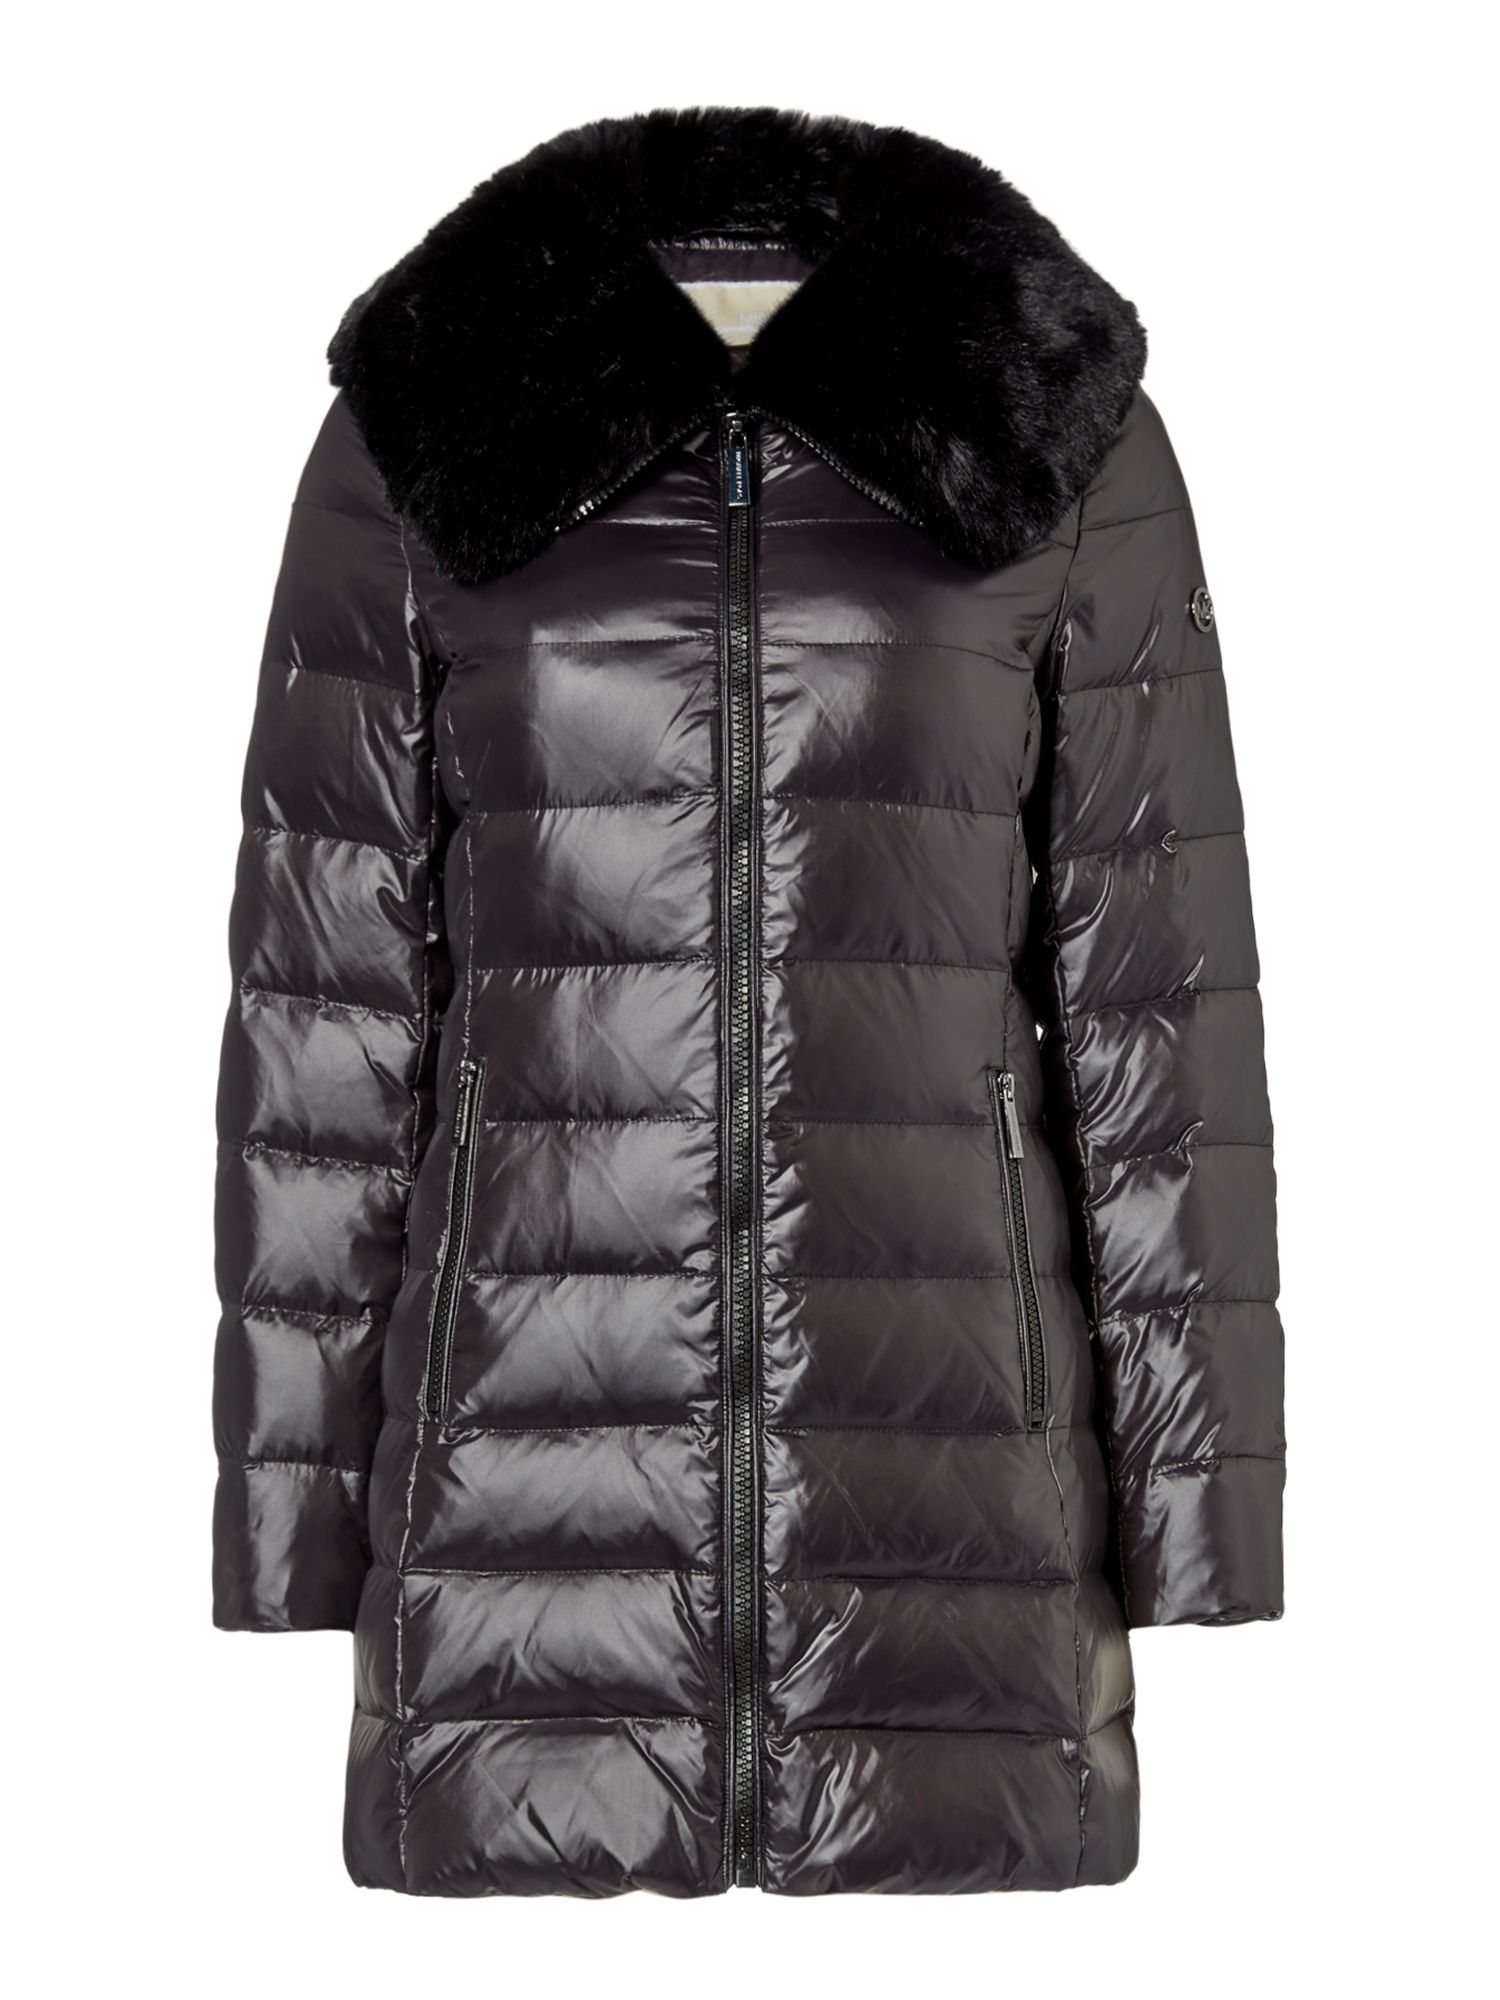 Michael Kors Medium length faux fur detail puffer jacket, Black